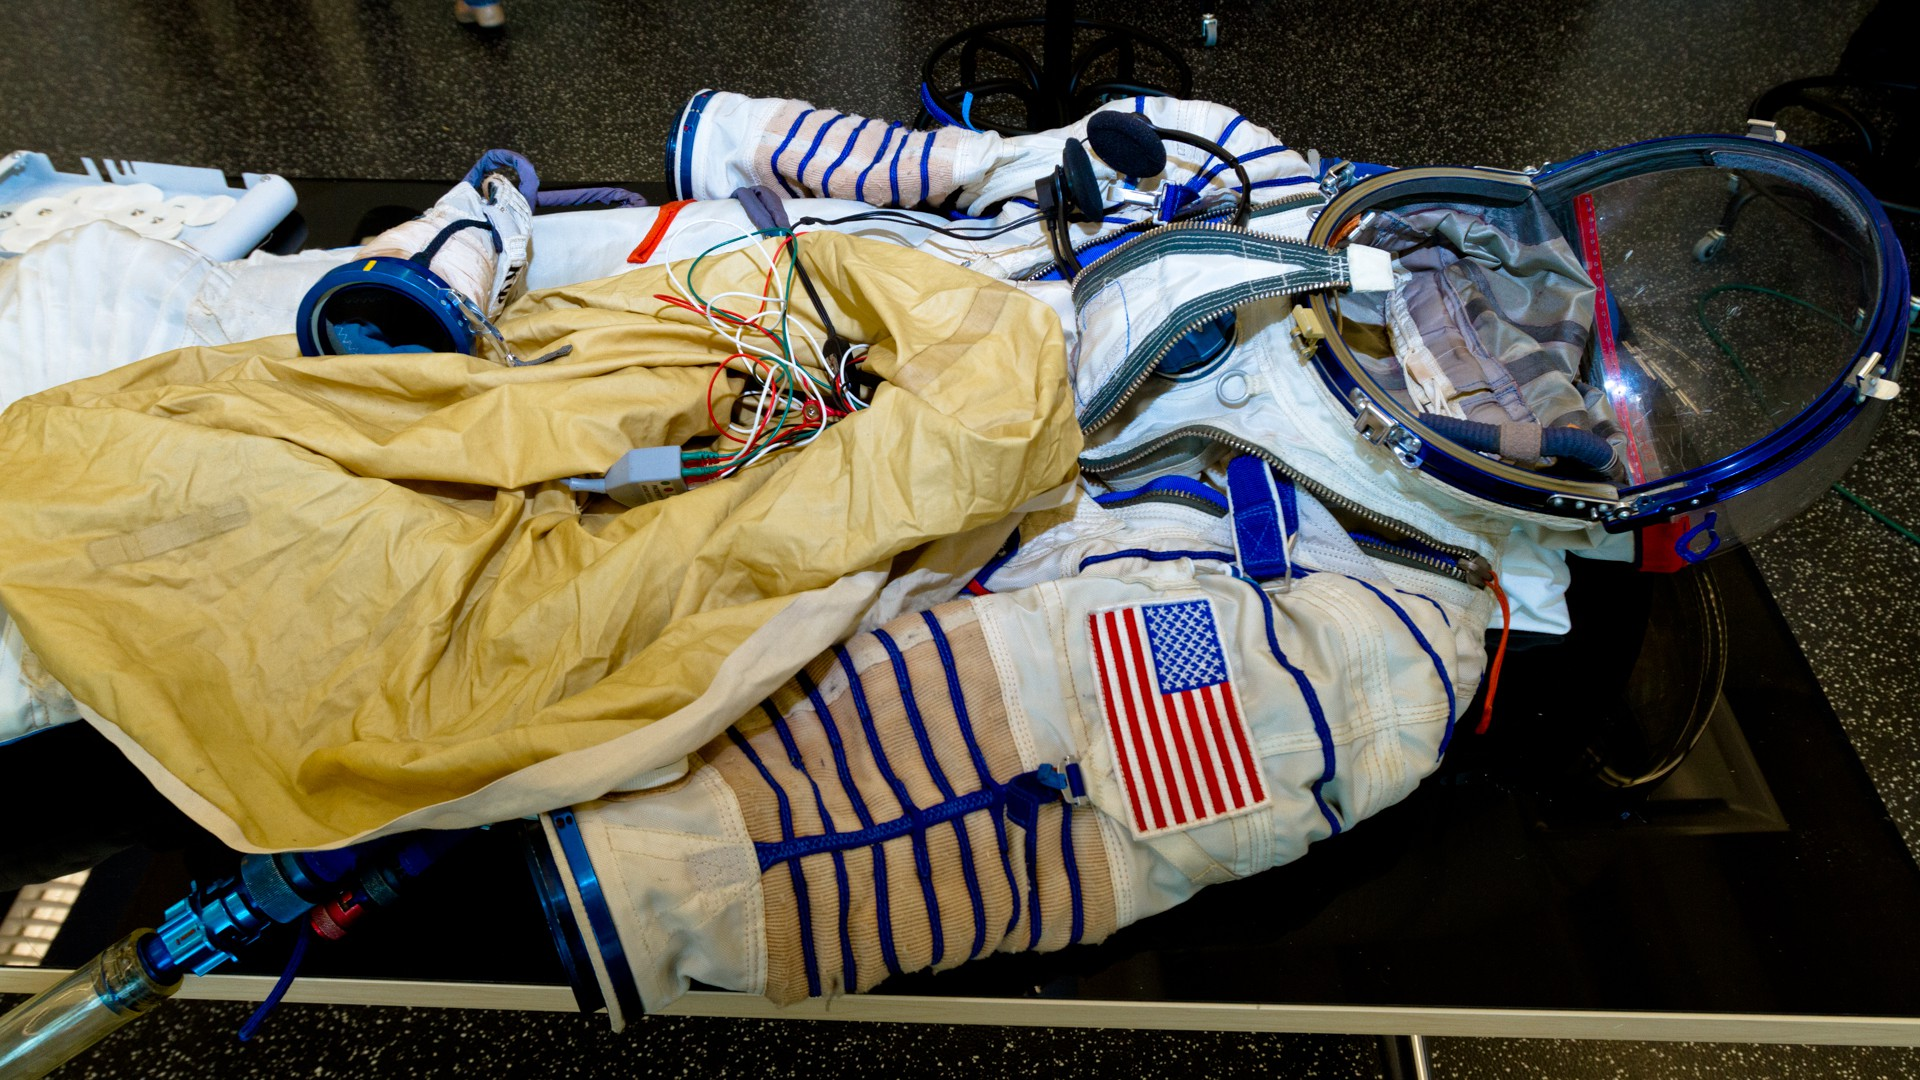 A NASA space suit